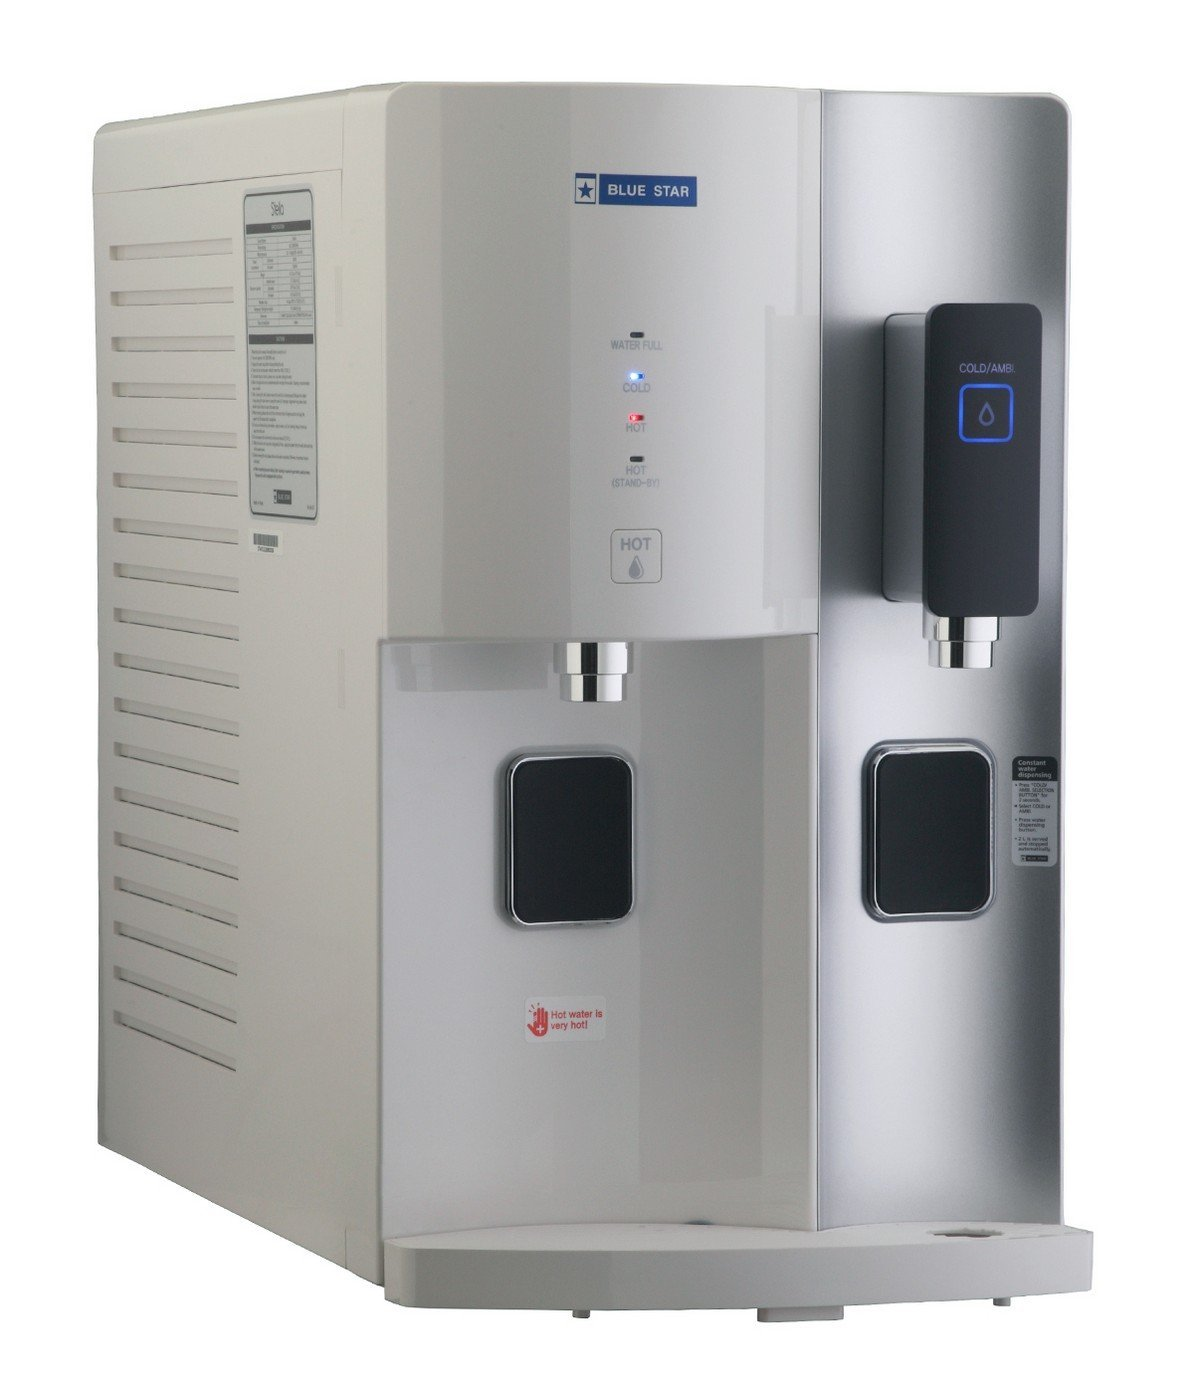 Blue Star Stella ST4WSHC01 8.2-Litre RO + UV Water Purifier